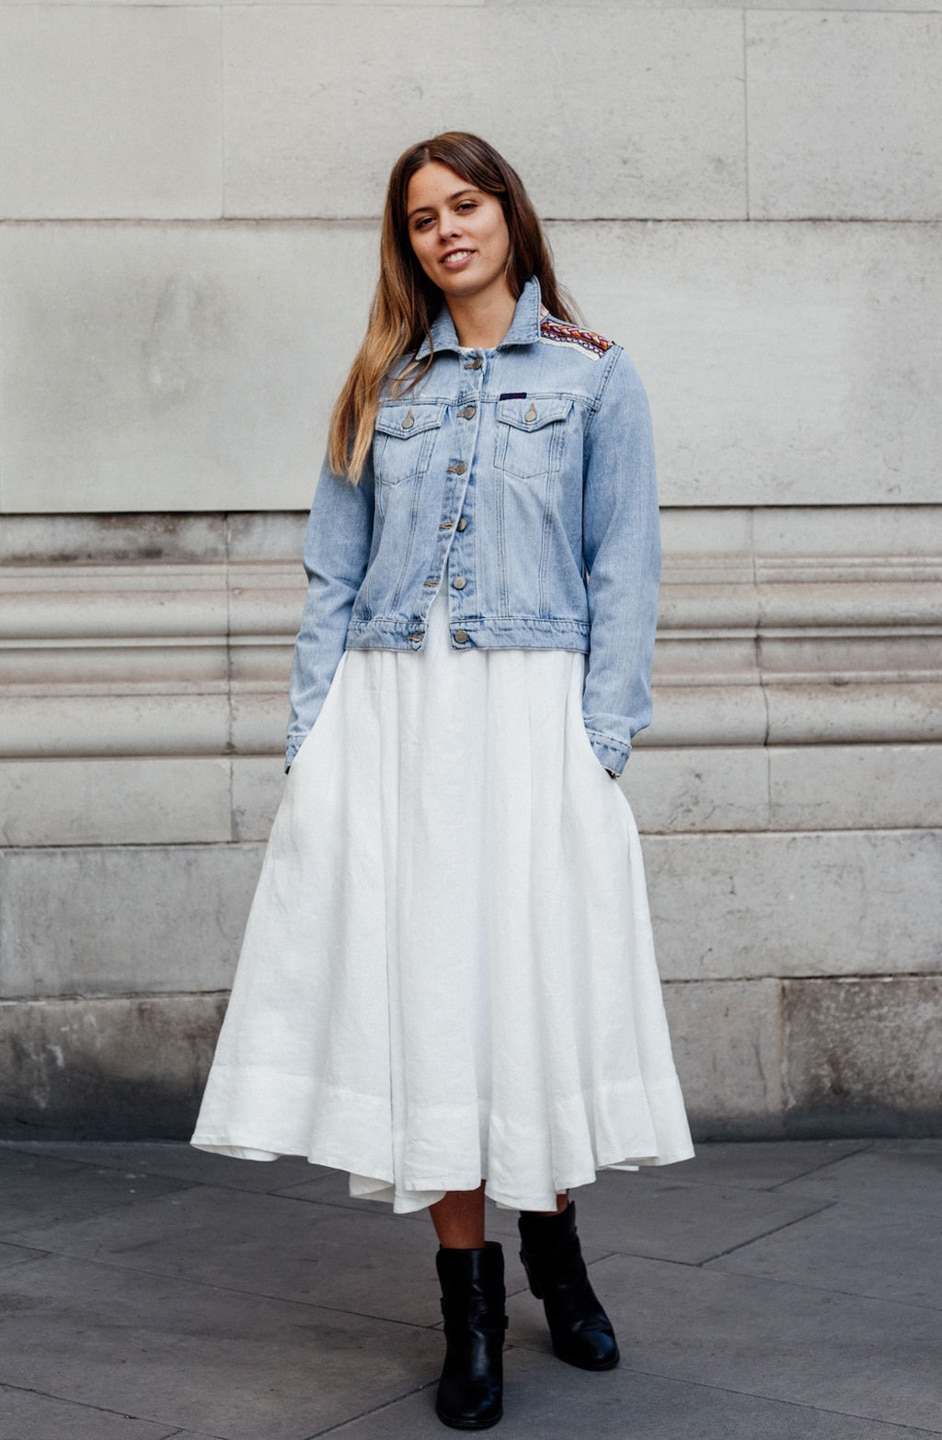 Jil wears white dress with fitted denim jacket